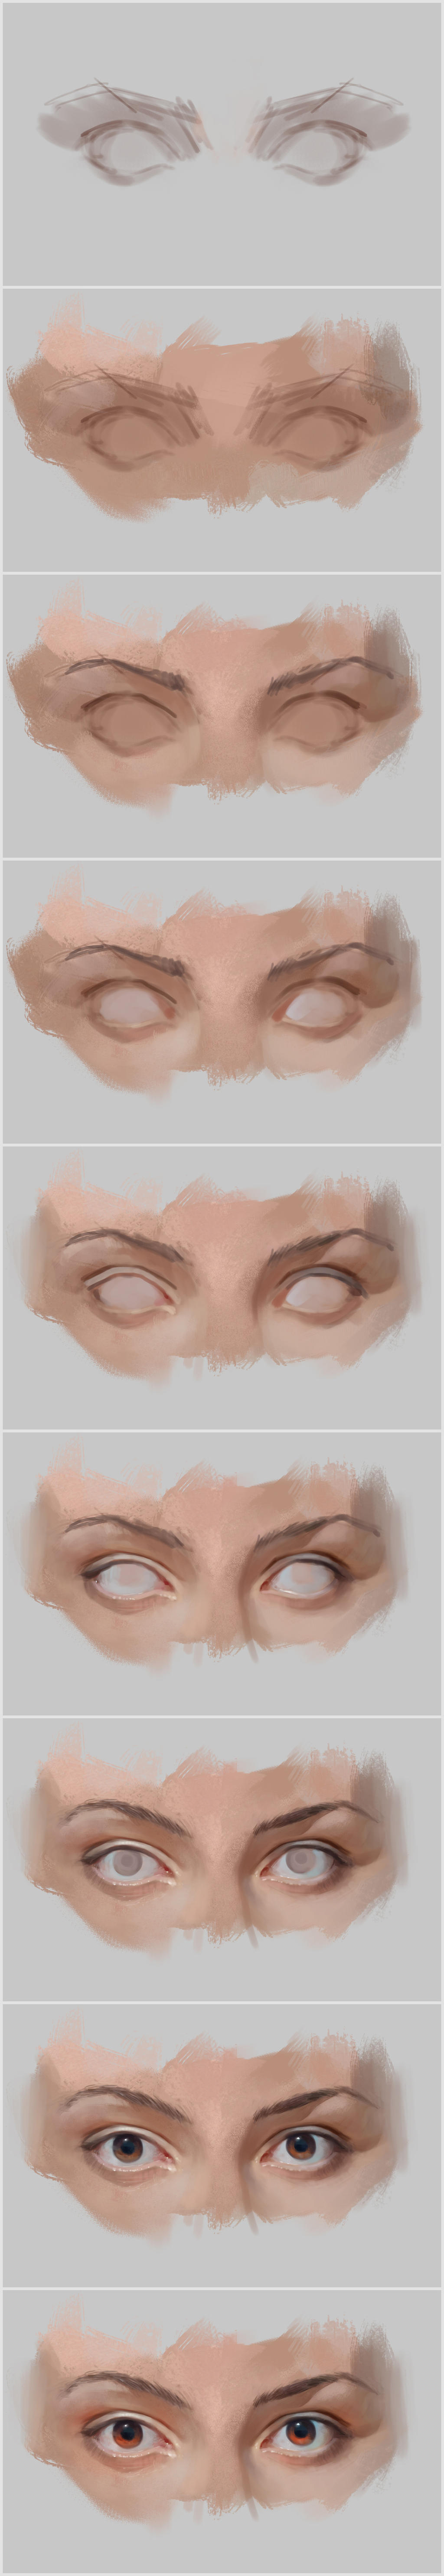 Eyes by vladgheneli